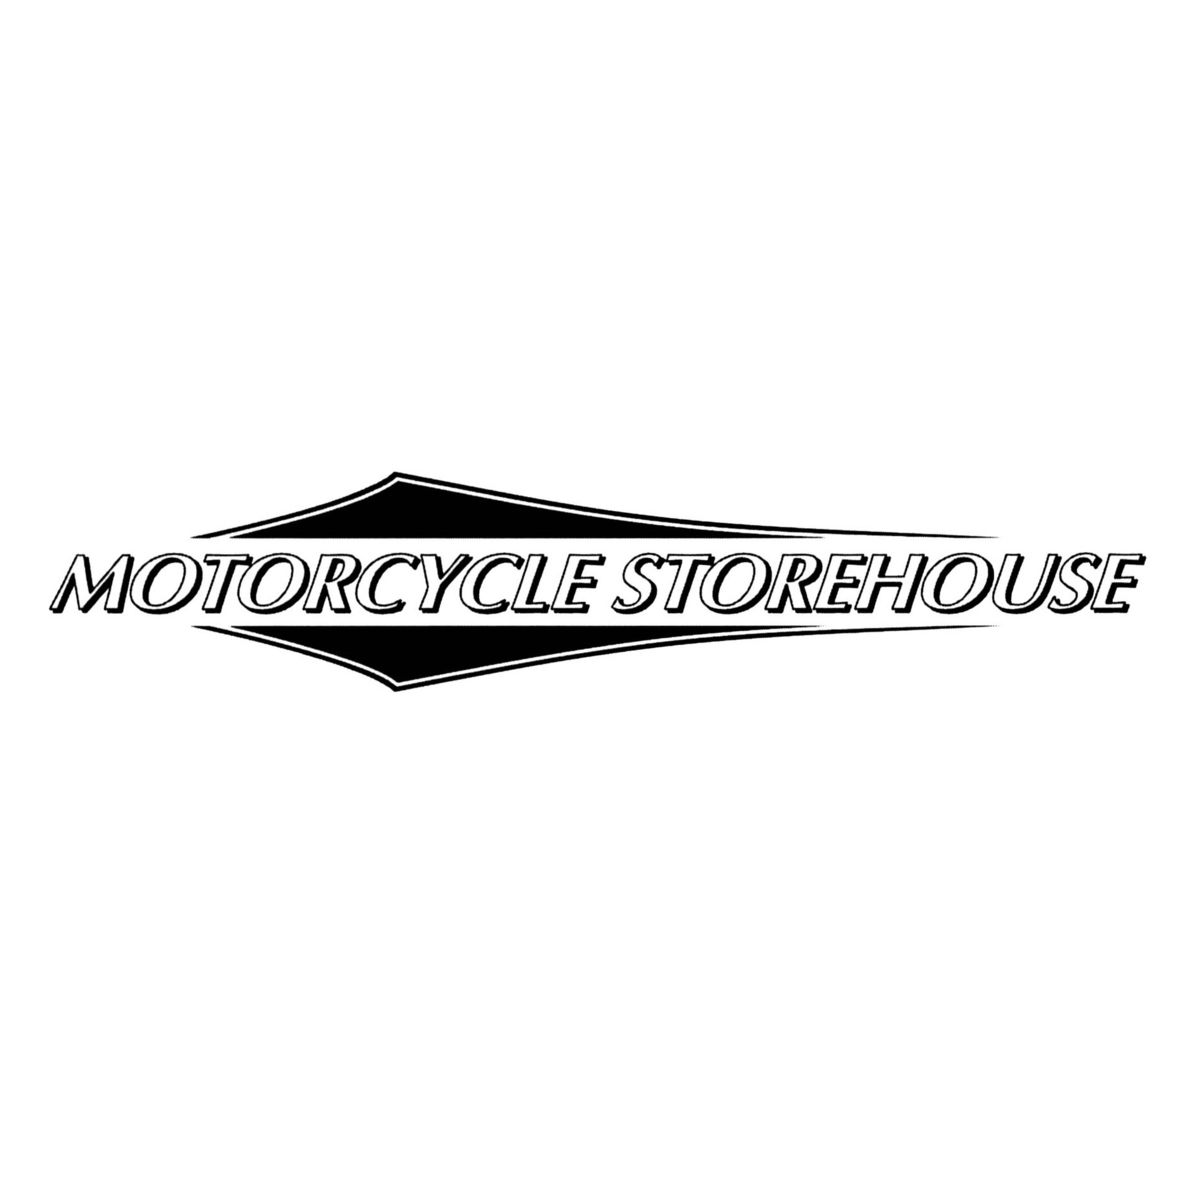 Motorcycles Storehouse